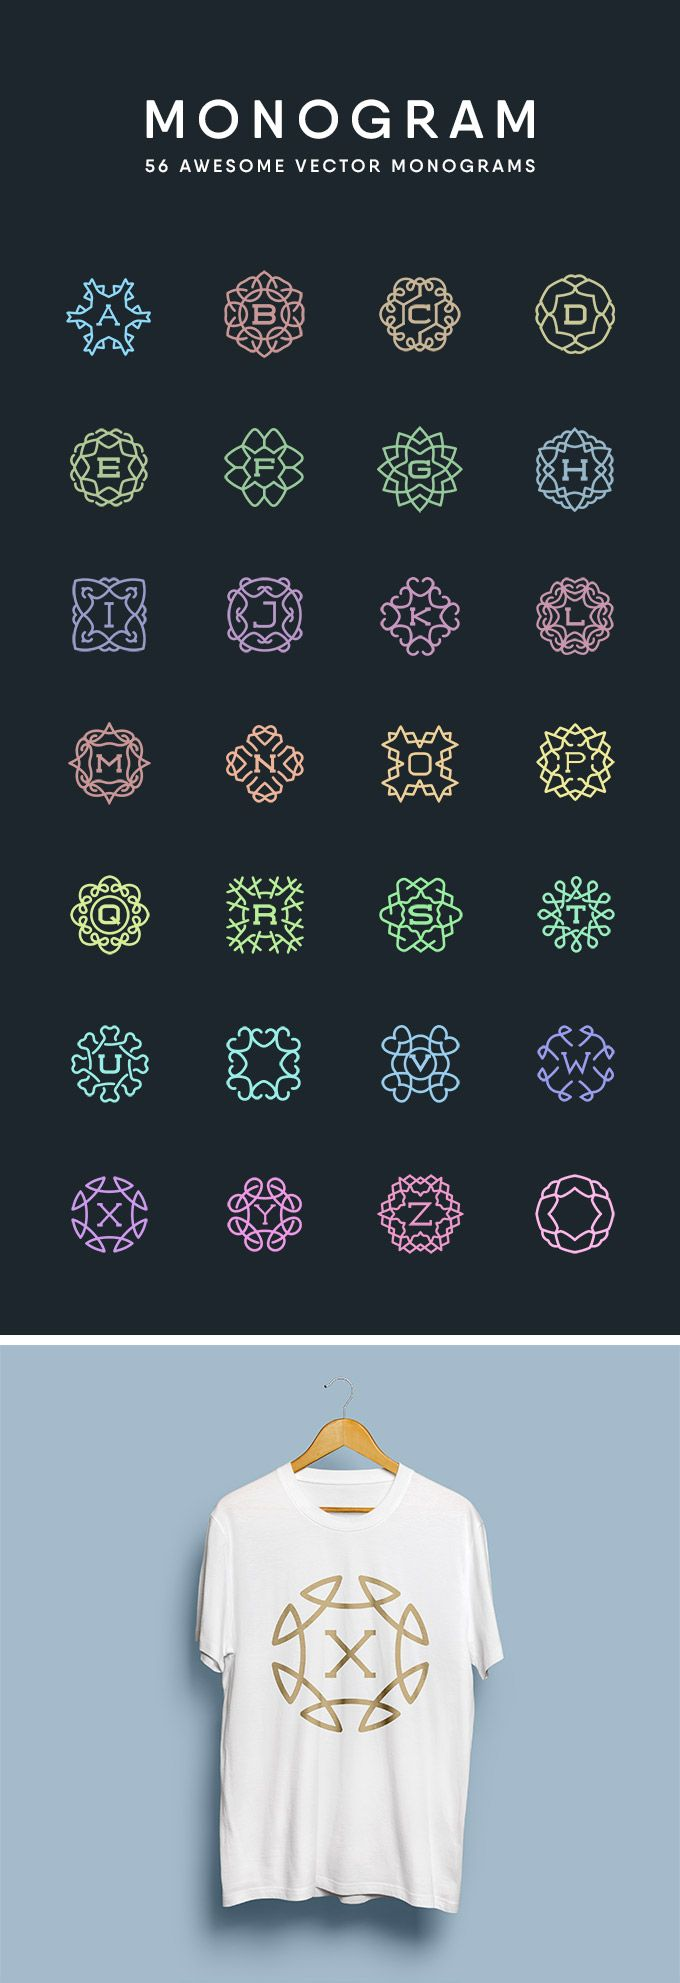 56 Awesome Vector Monograms